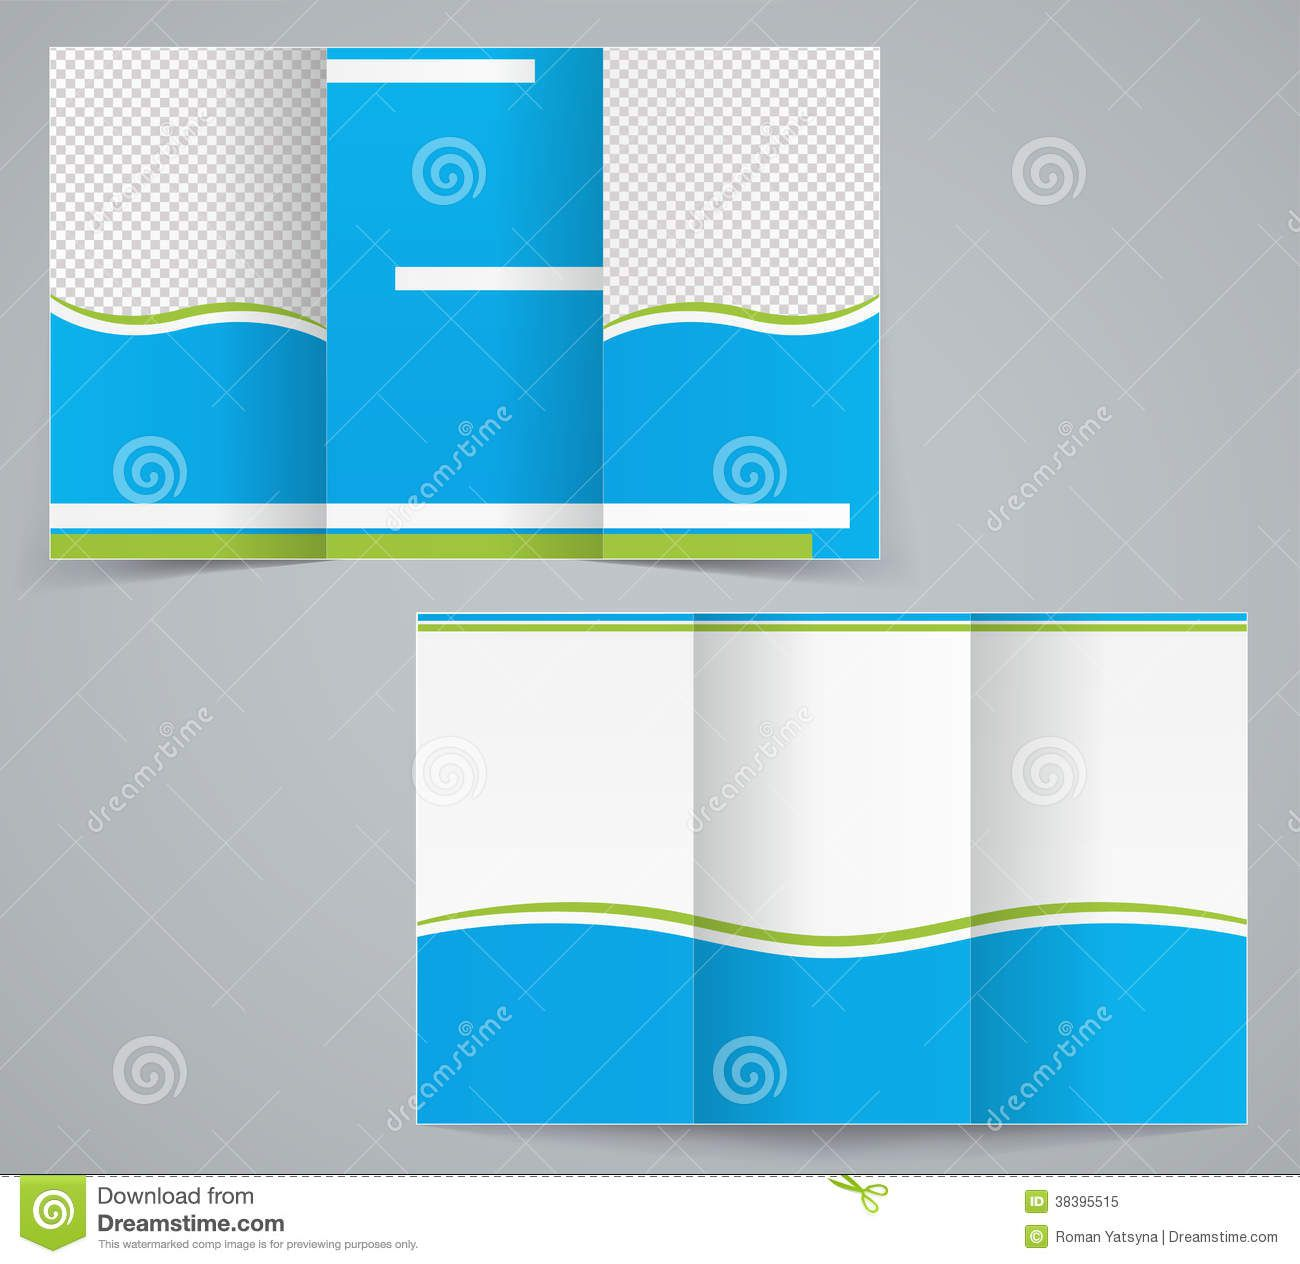 008 Outstanding Word Tri Fold Brochure Template High Resolution  2010 Microsoft M OfficeFull